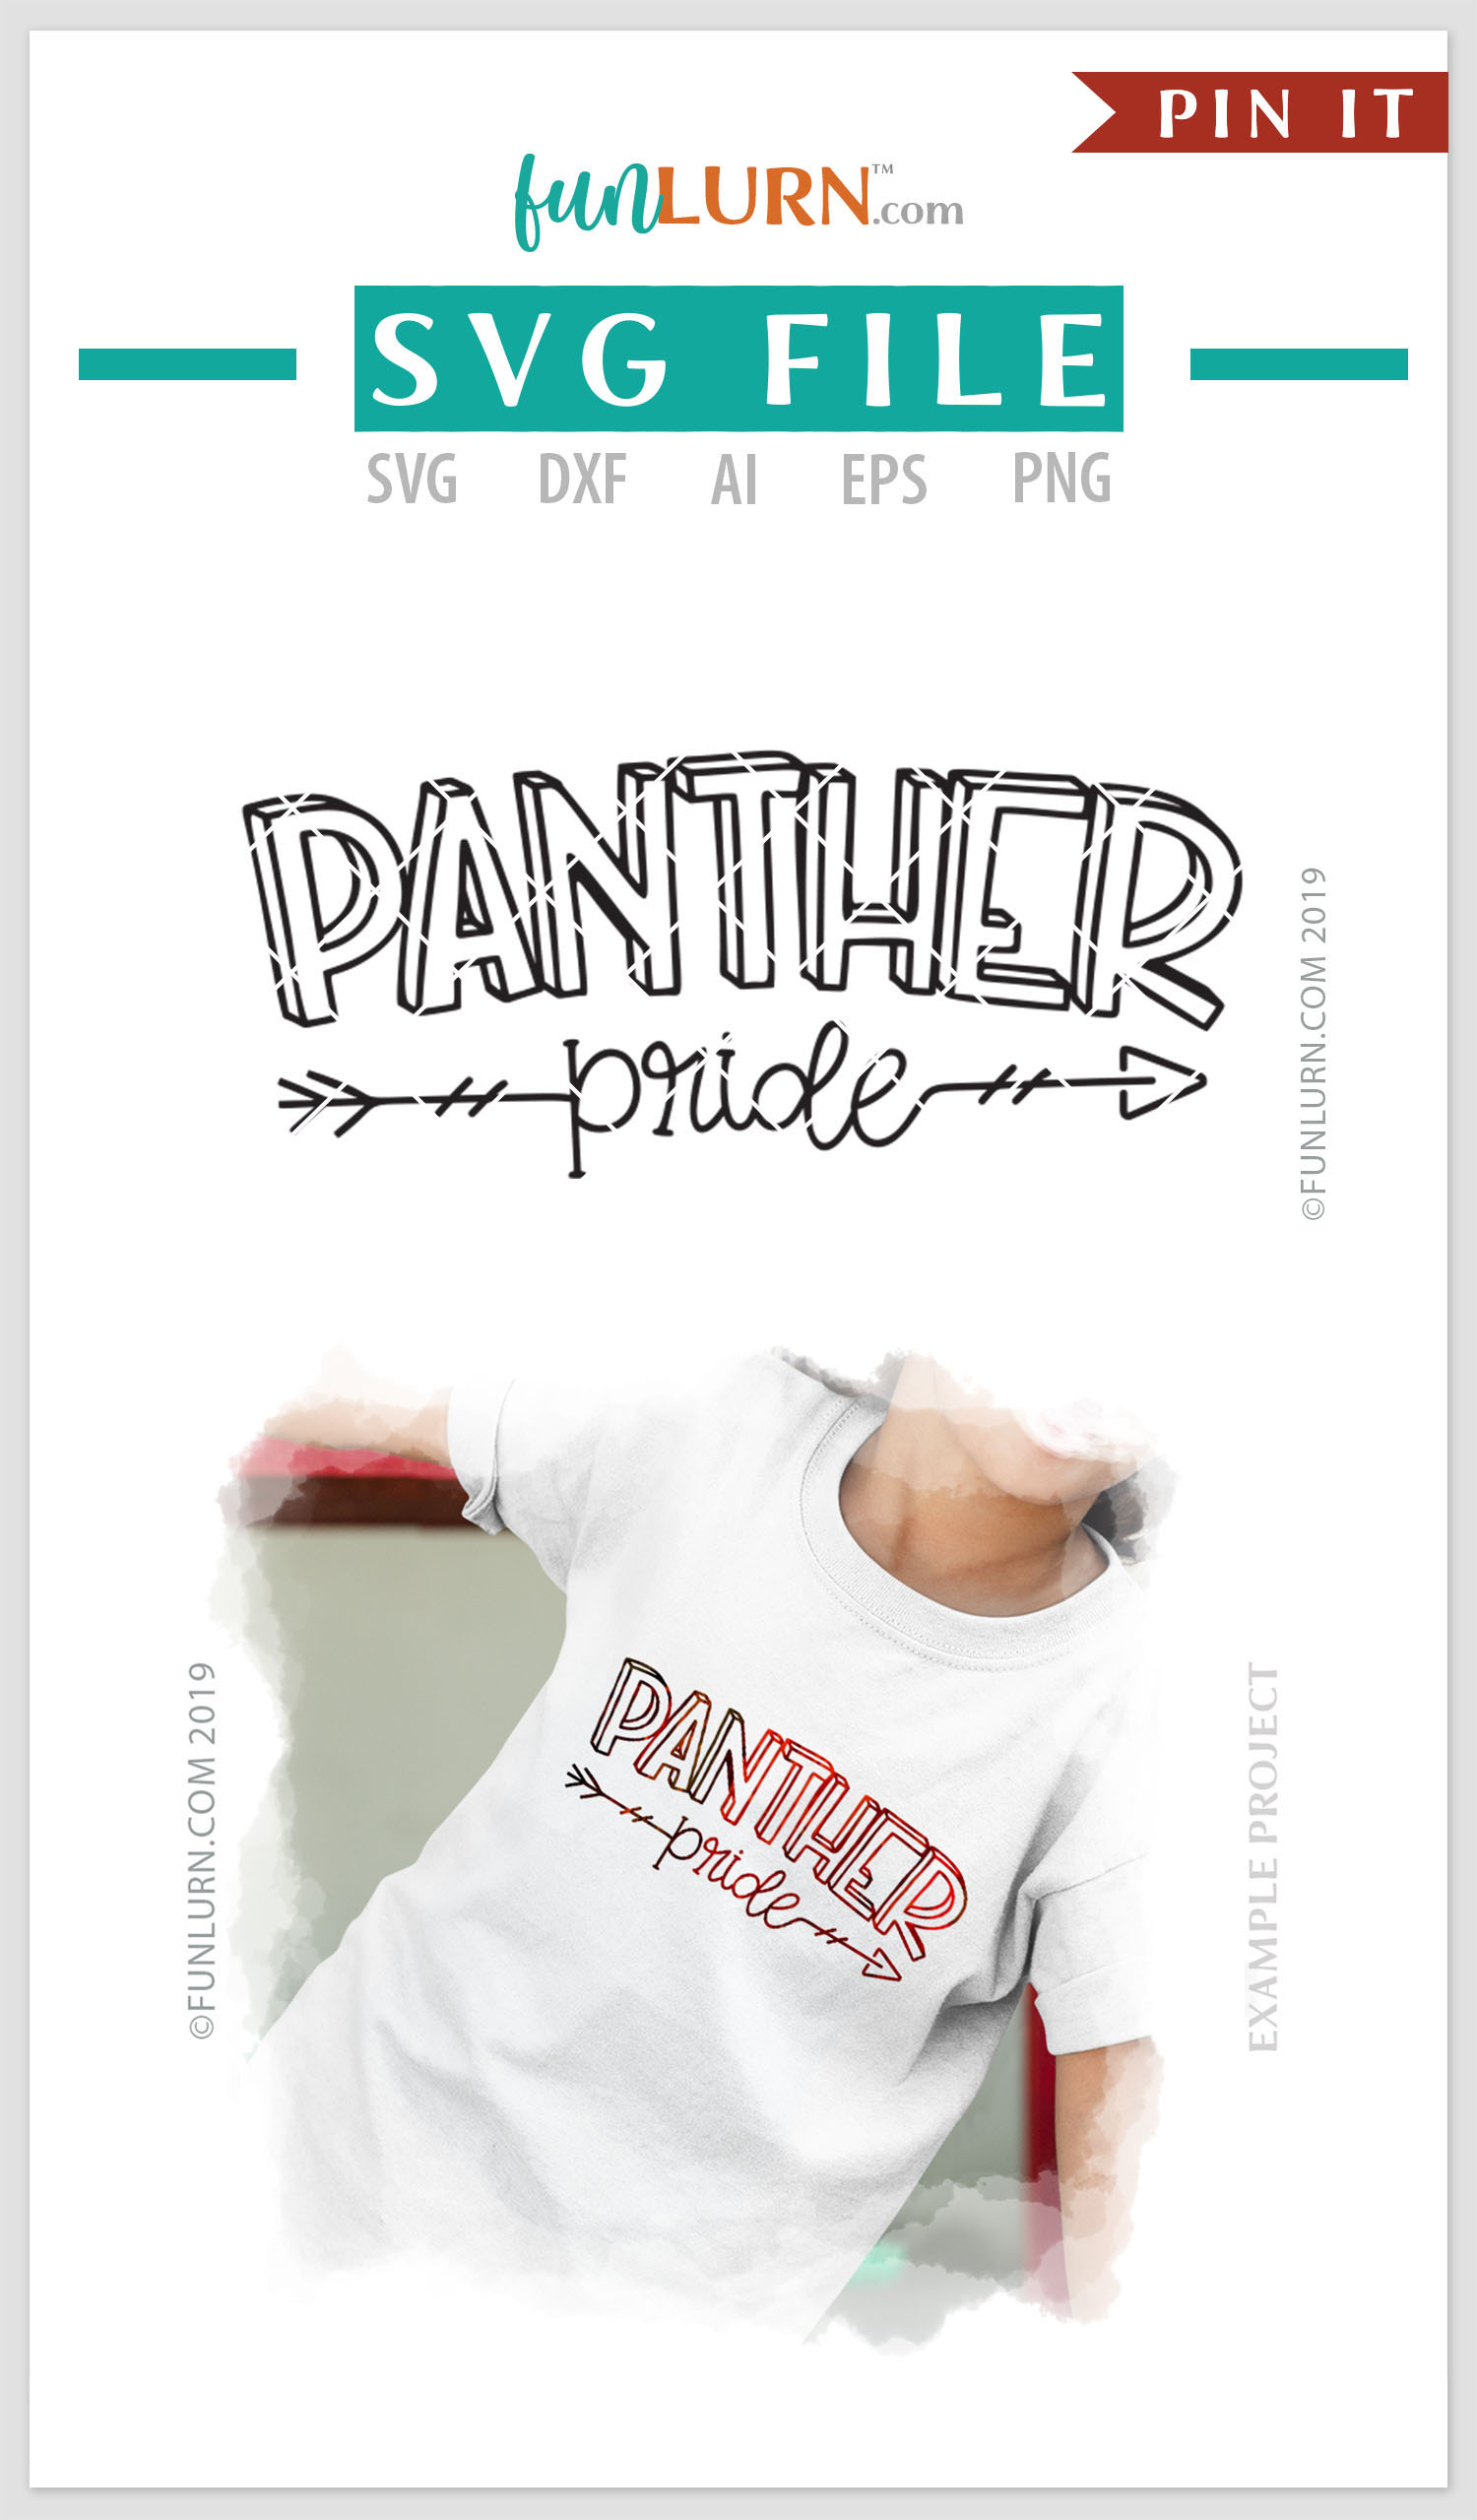 Panther Pride Team SVG Cut File example image 4